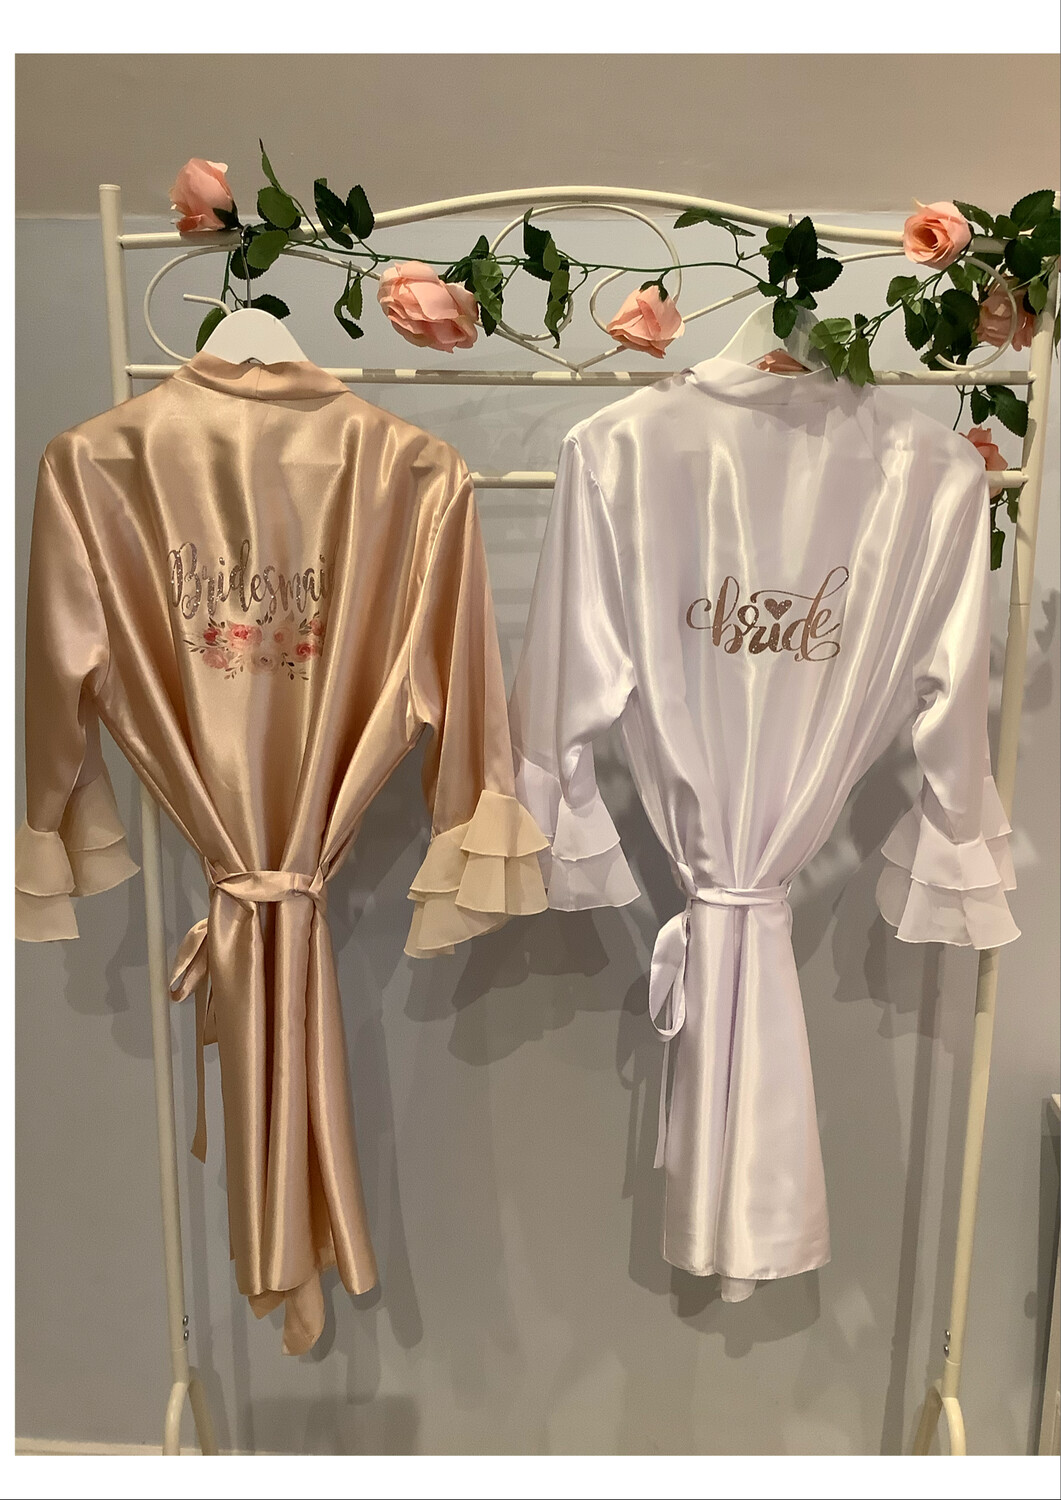 NEW Ruffle sleeved satin robes